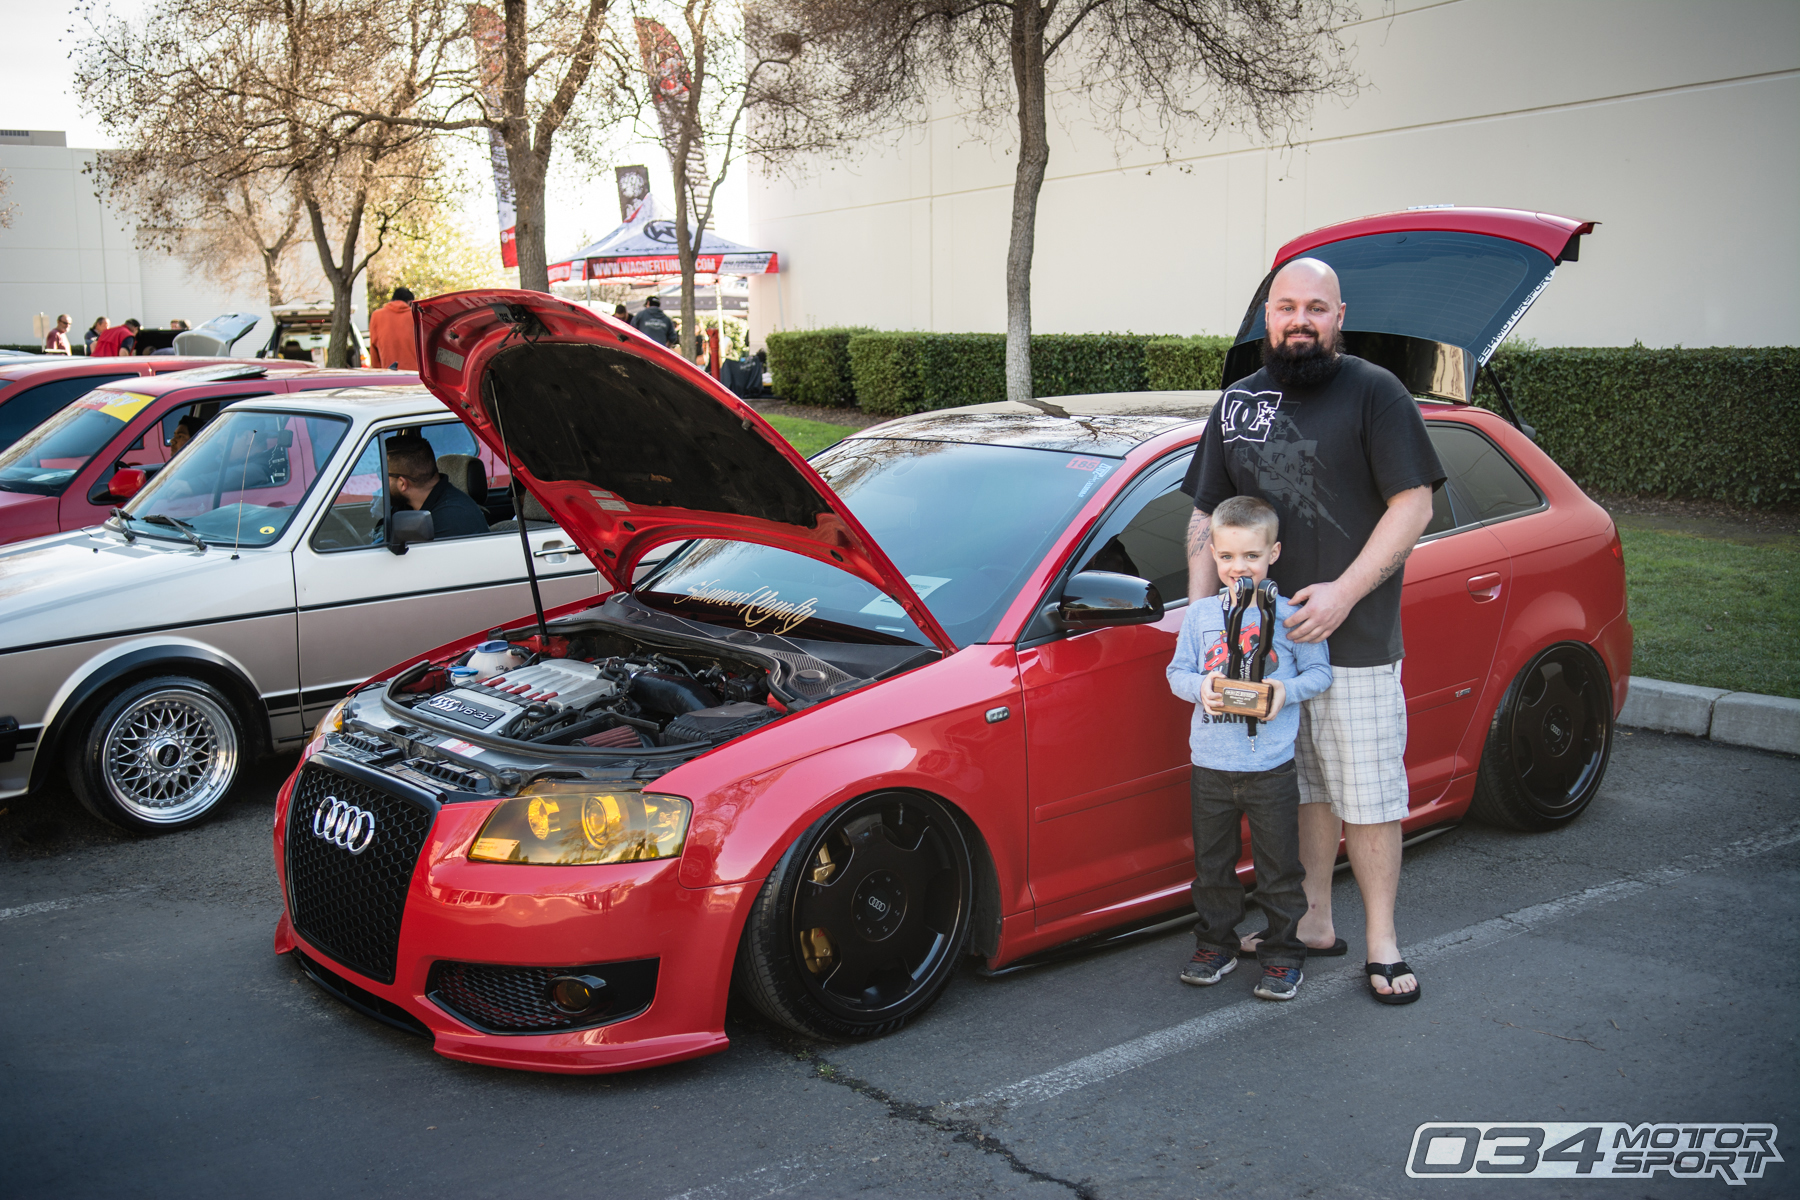 Troy Walters and his son won Best Stance at WinterFest 2018 with a 2006 Audi A3 3.2L